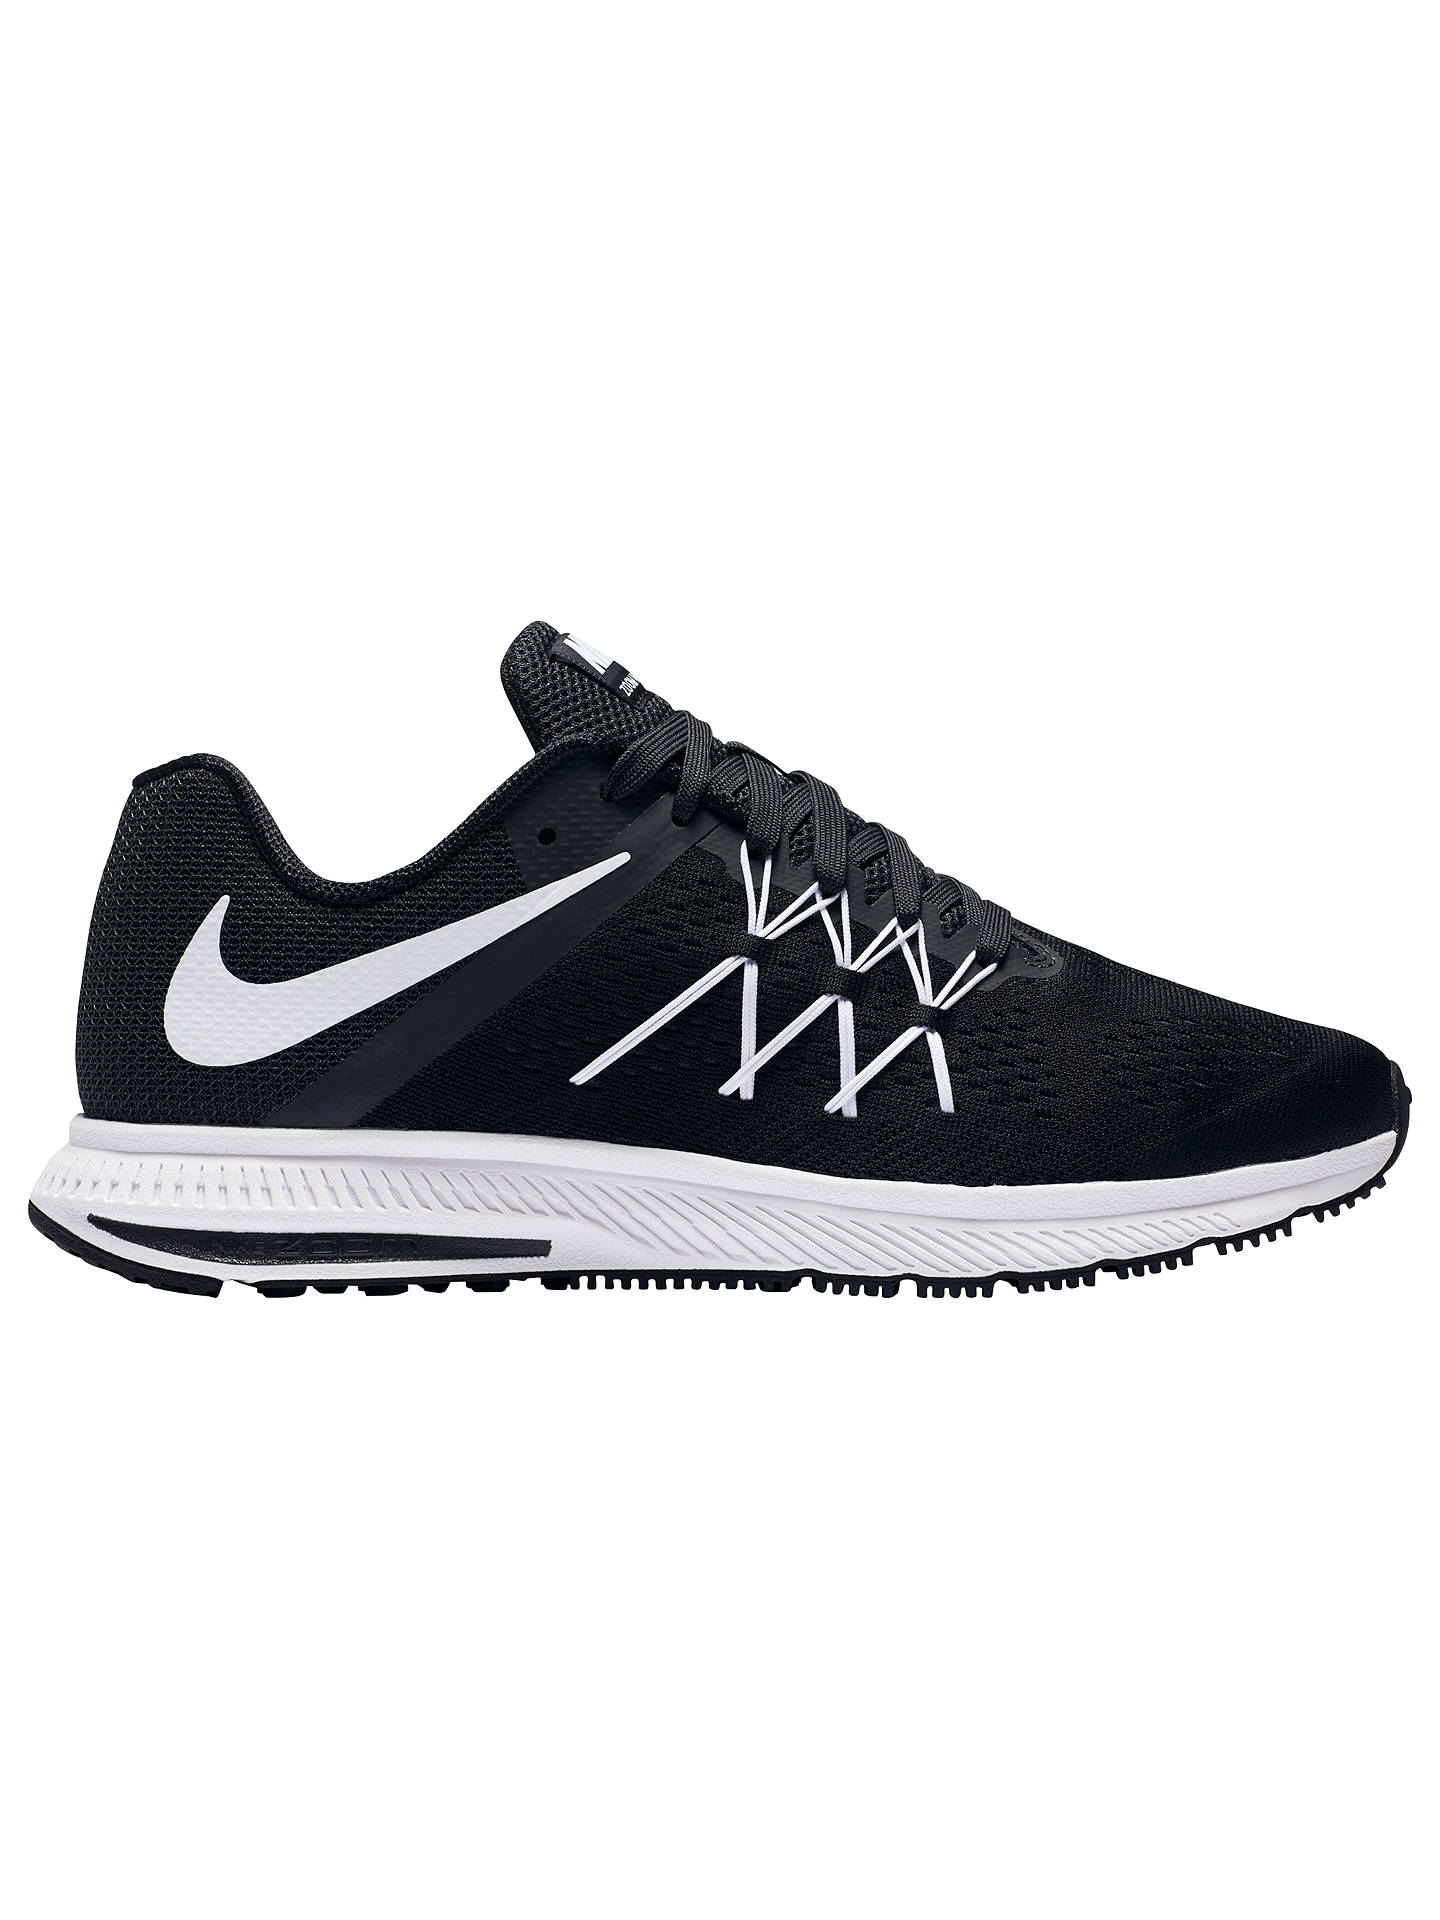 new product 73b40 e51d2 Nike Air Zoom Winflo 3 Men's Running Shoes, Black/White at ...